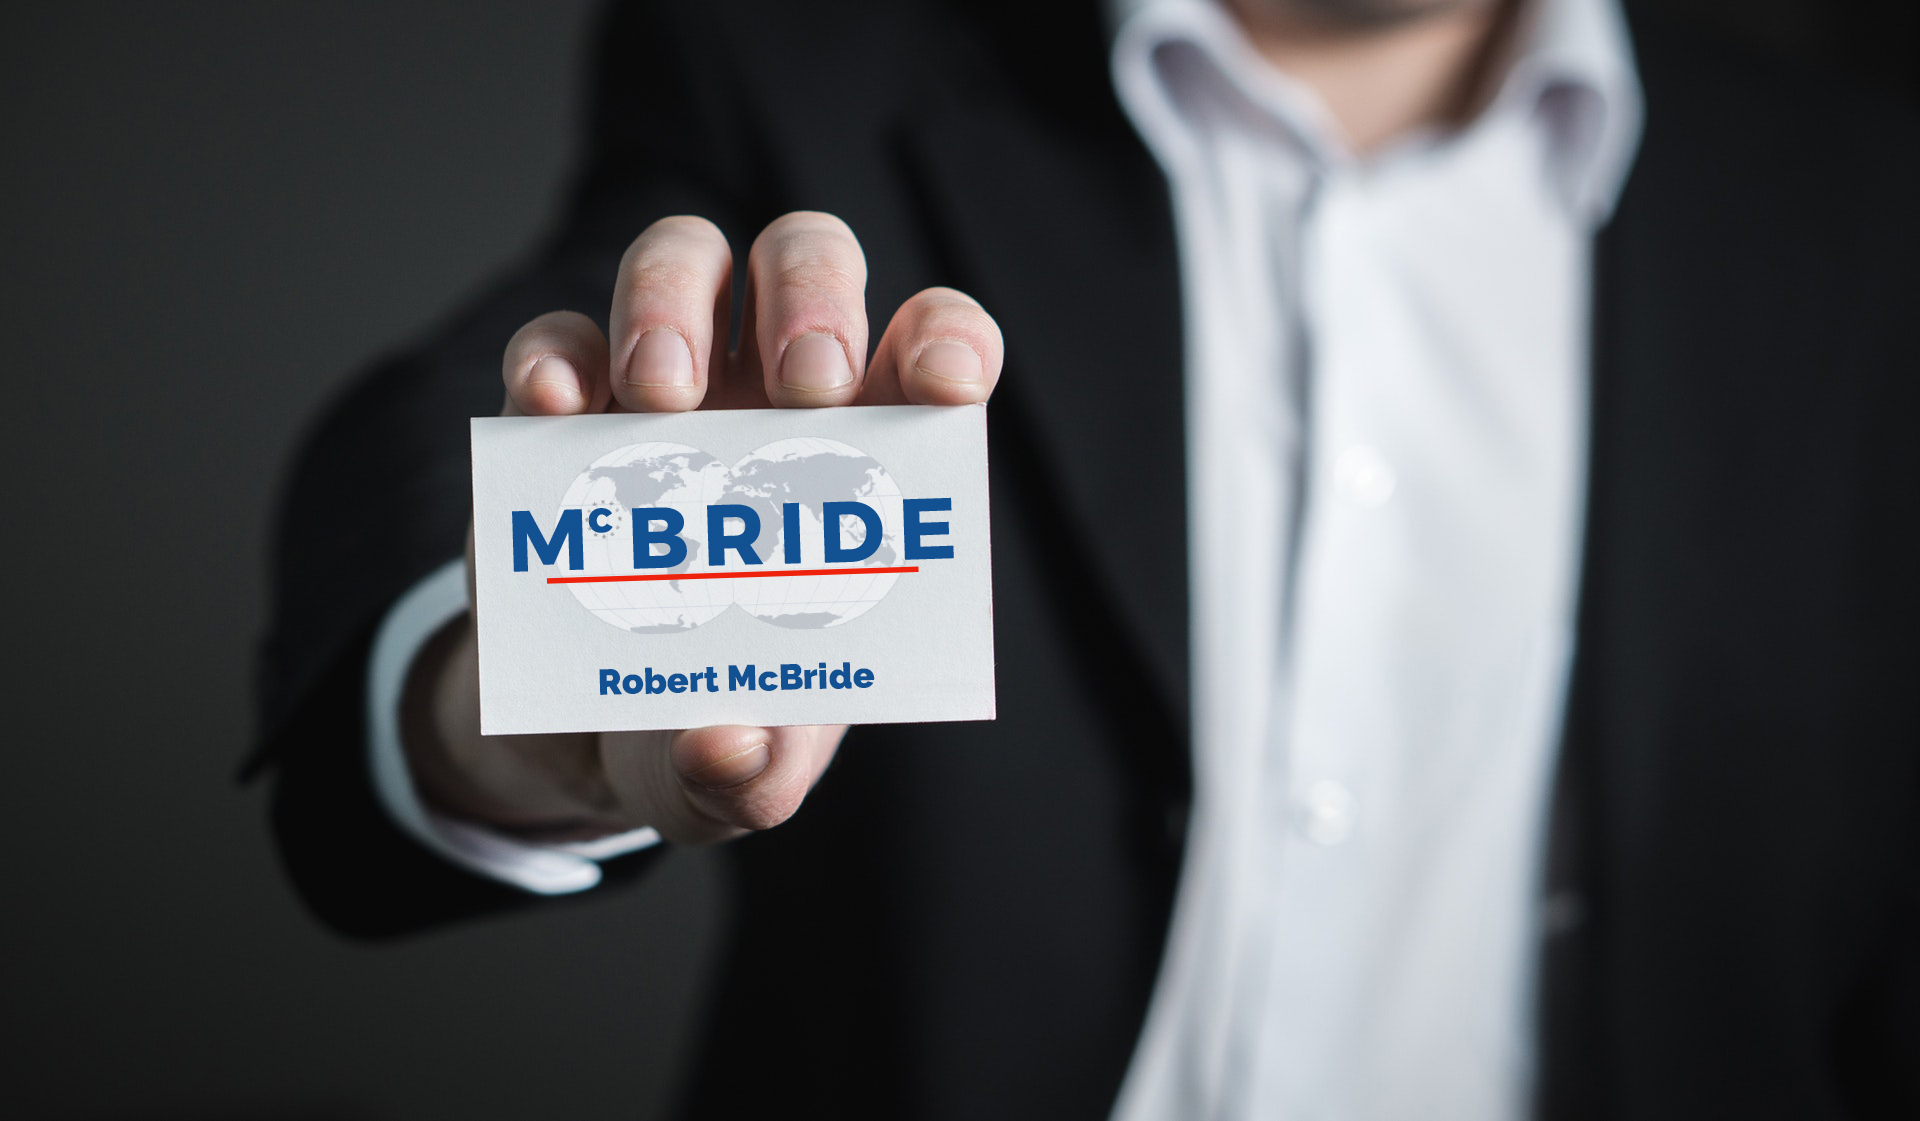 McBride Consulting & Business Development Group - New York NY